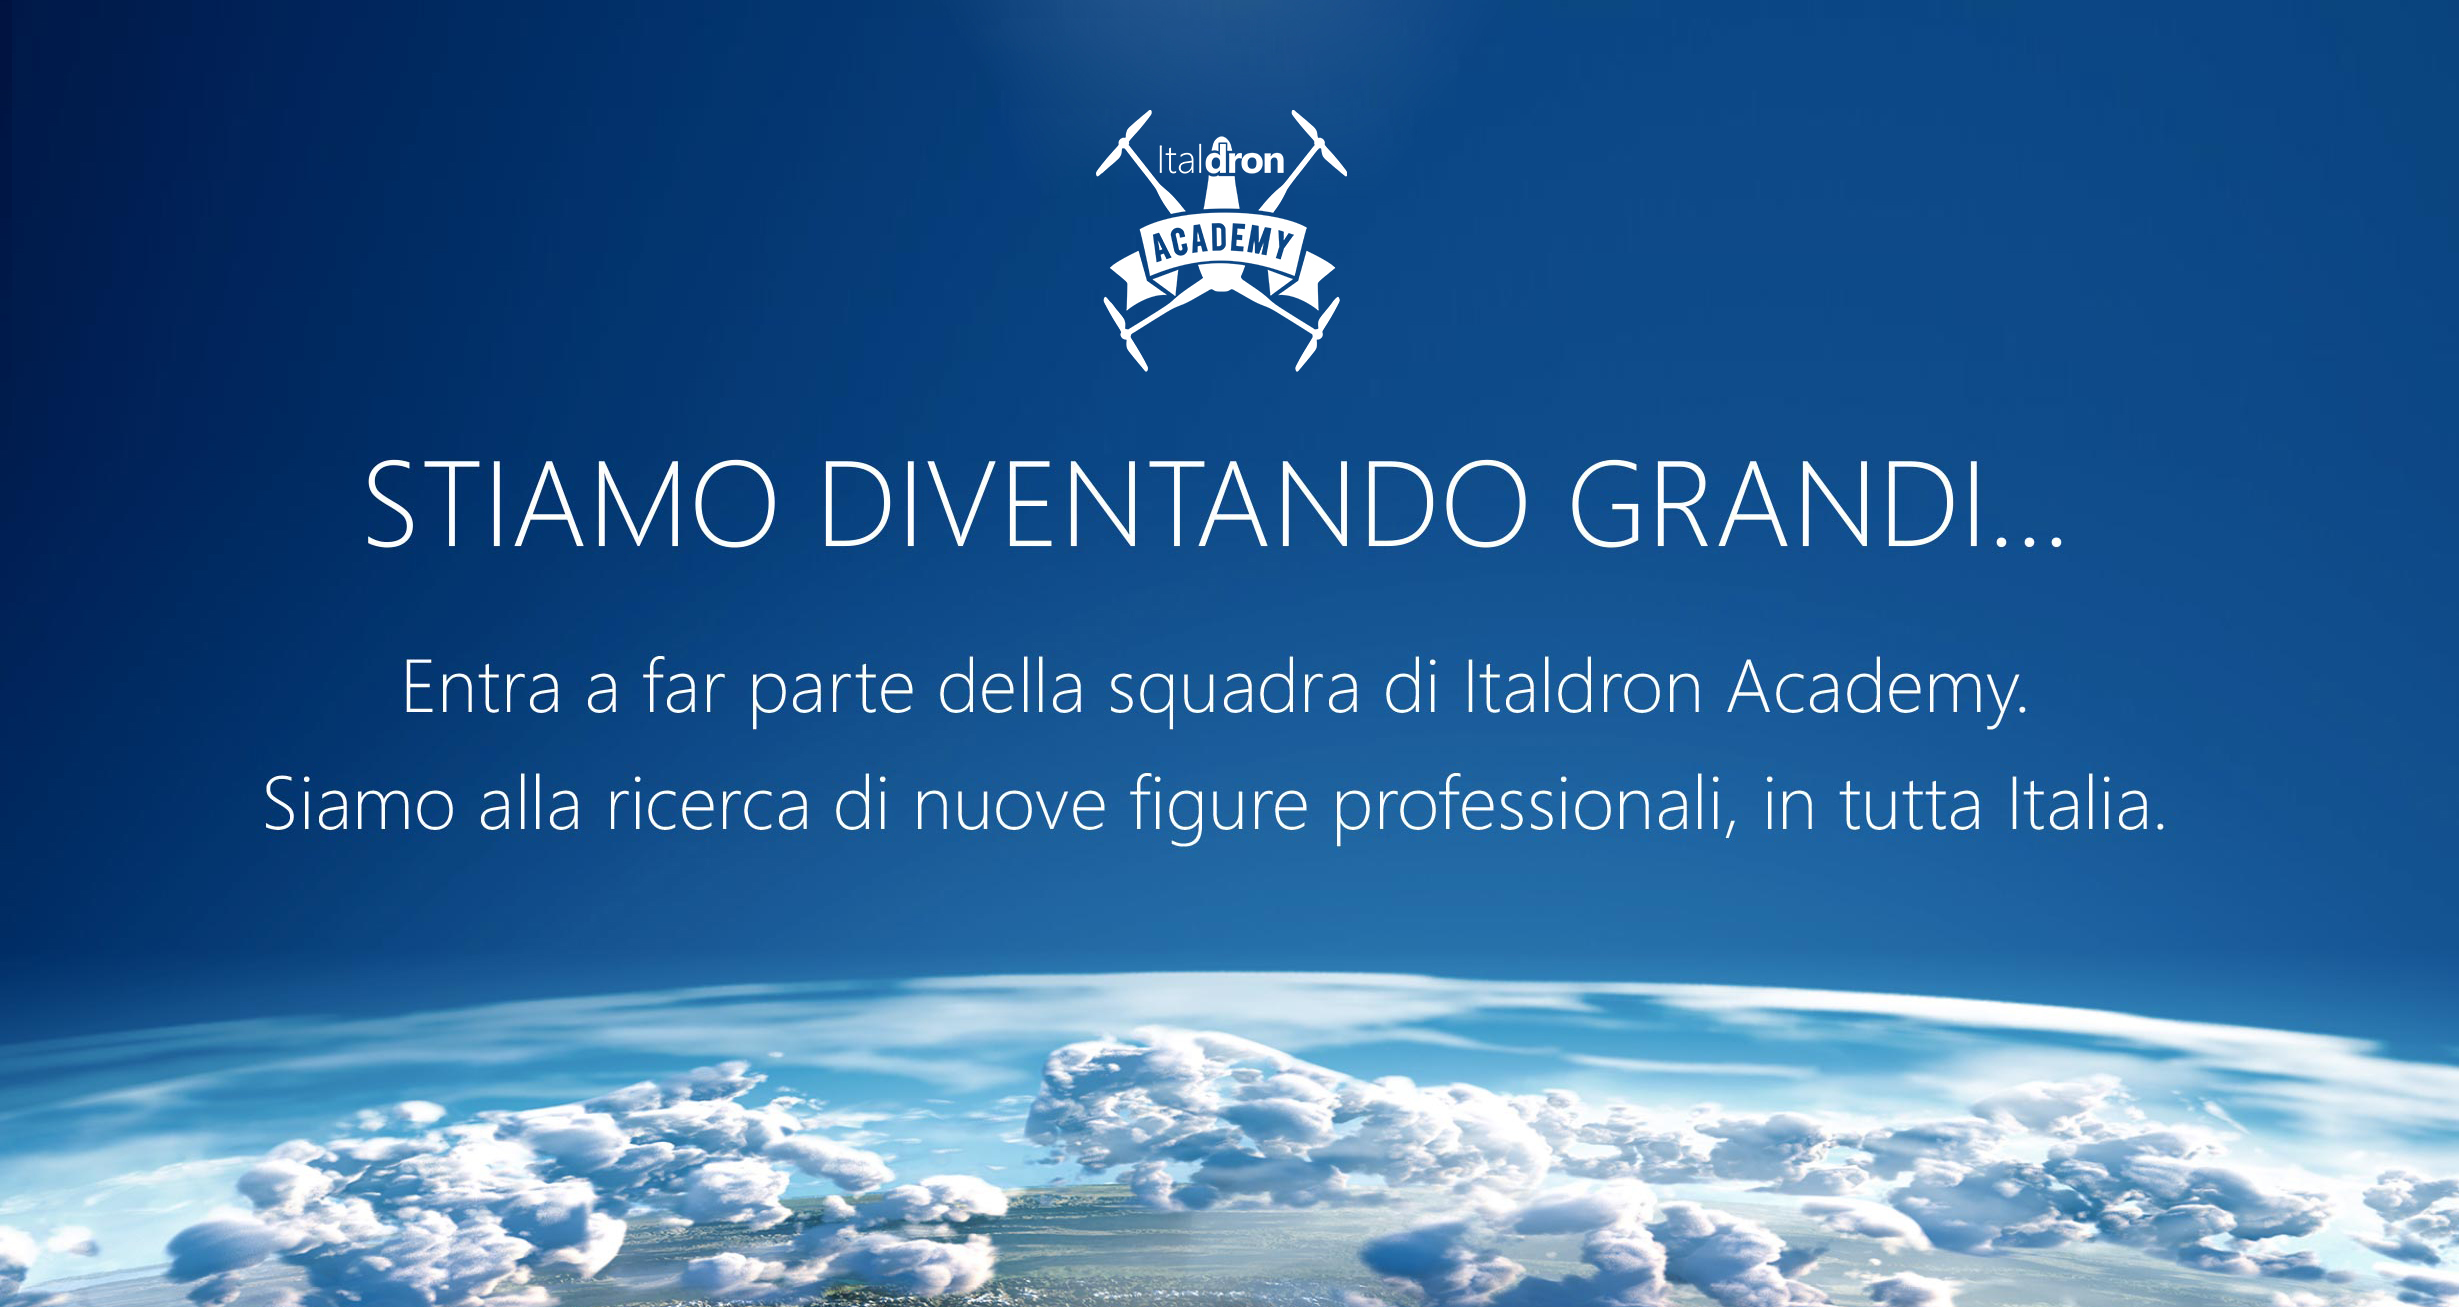 Recruiting Italdron Academy